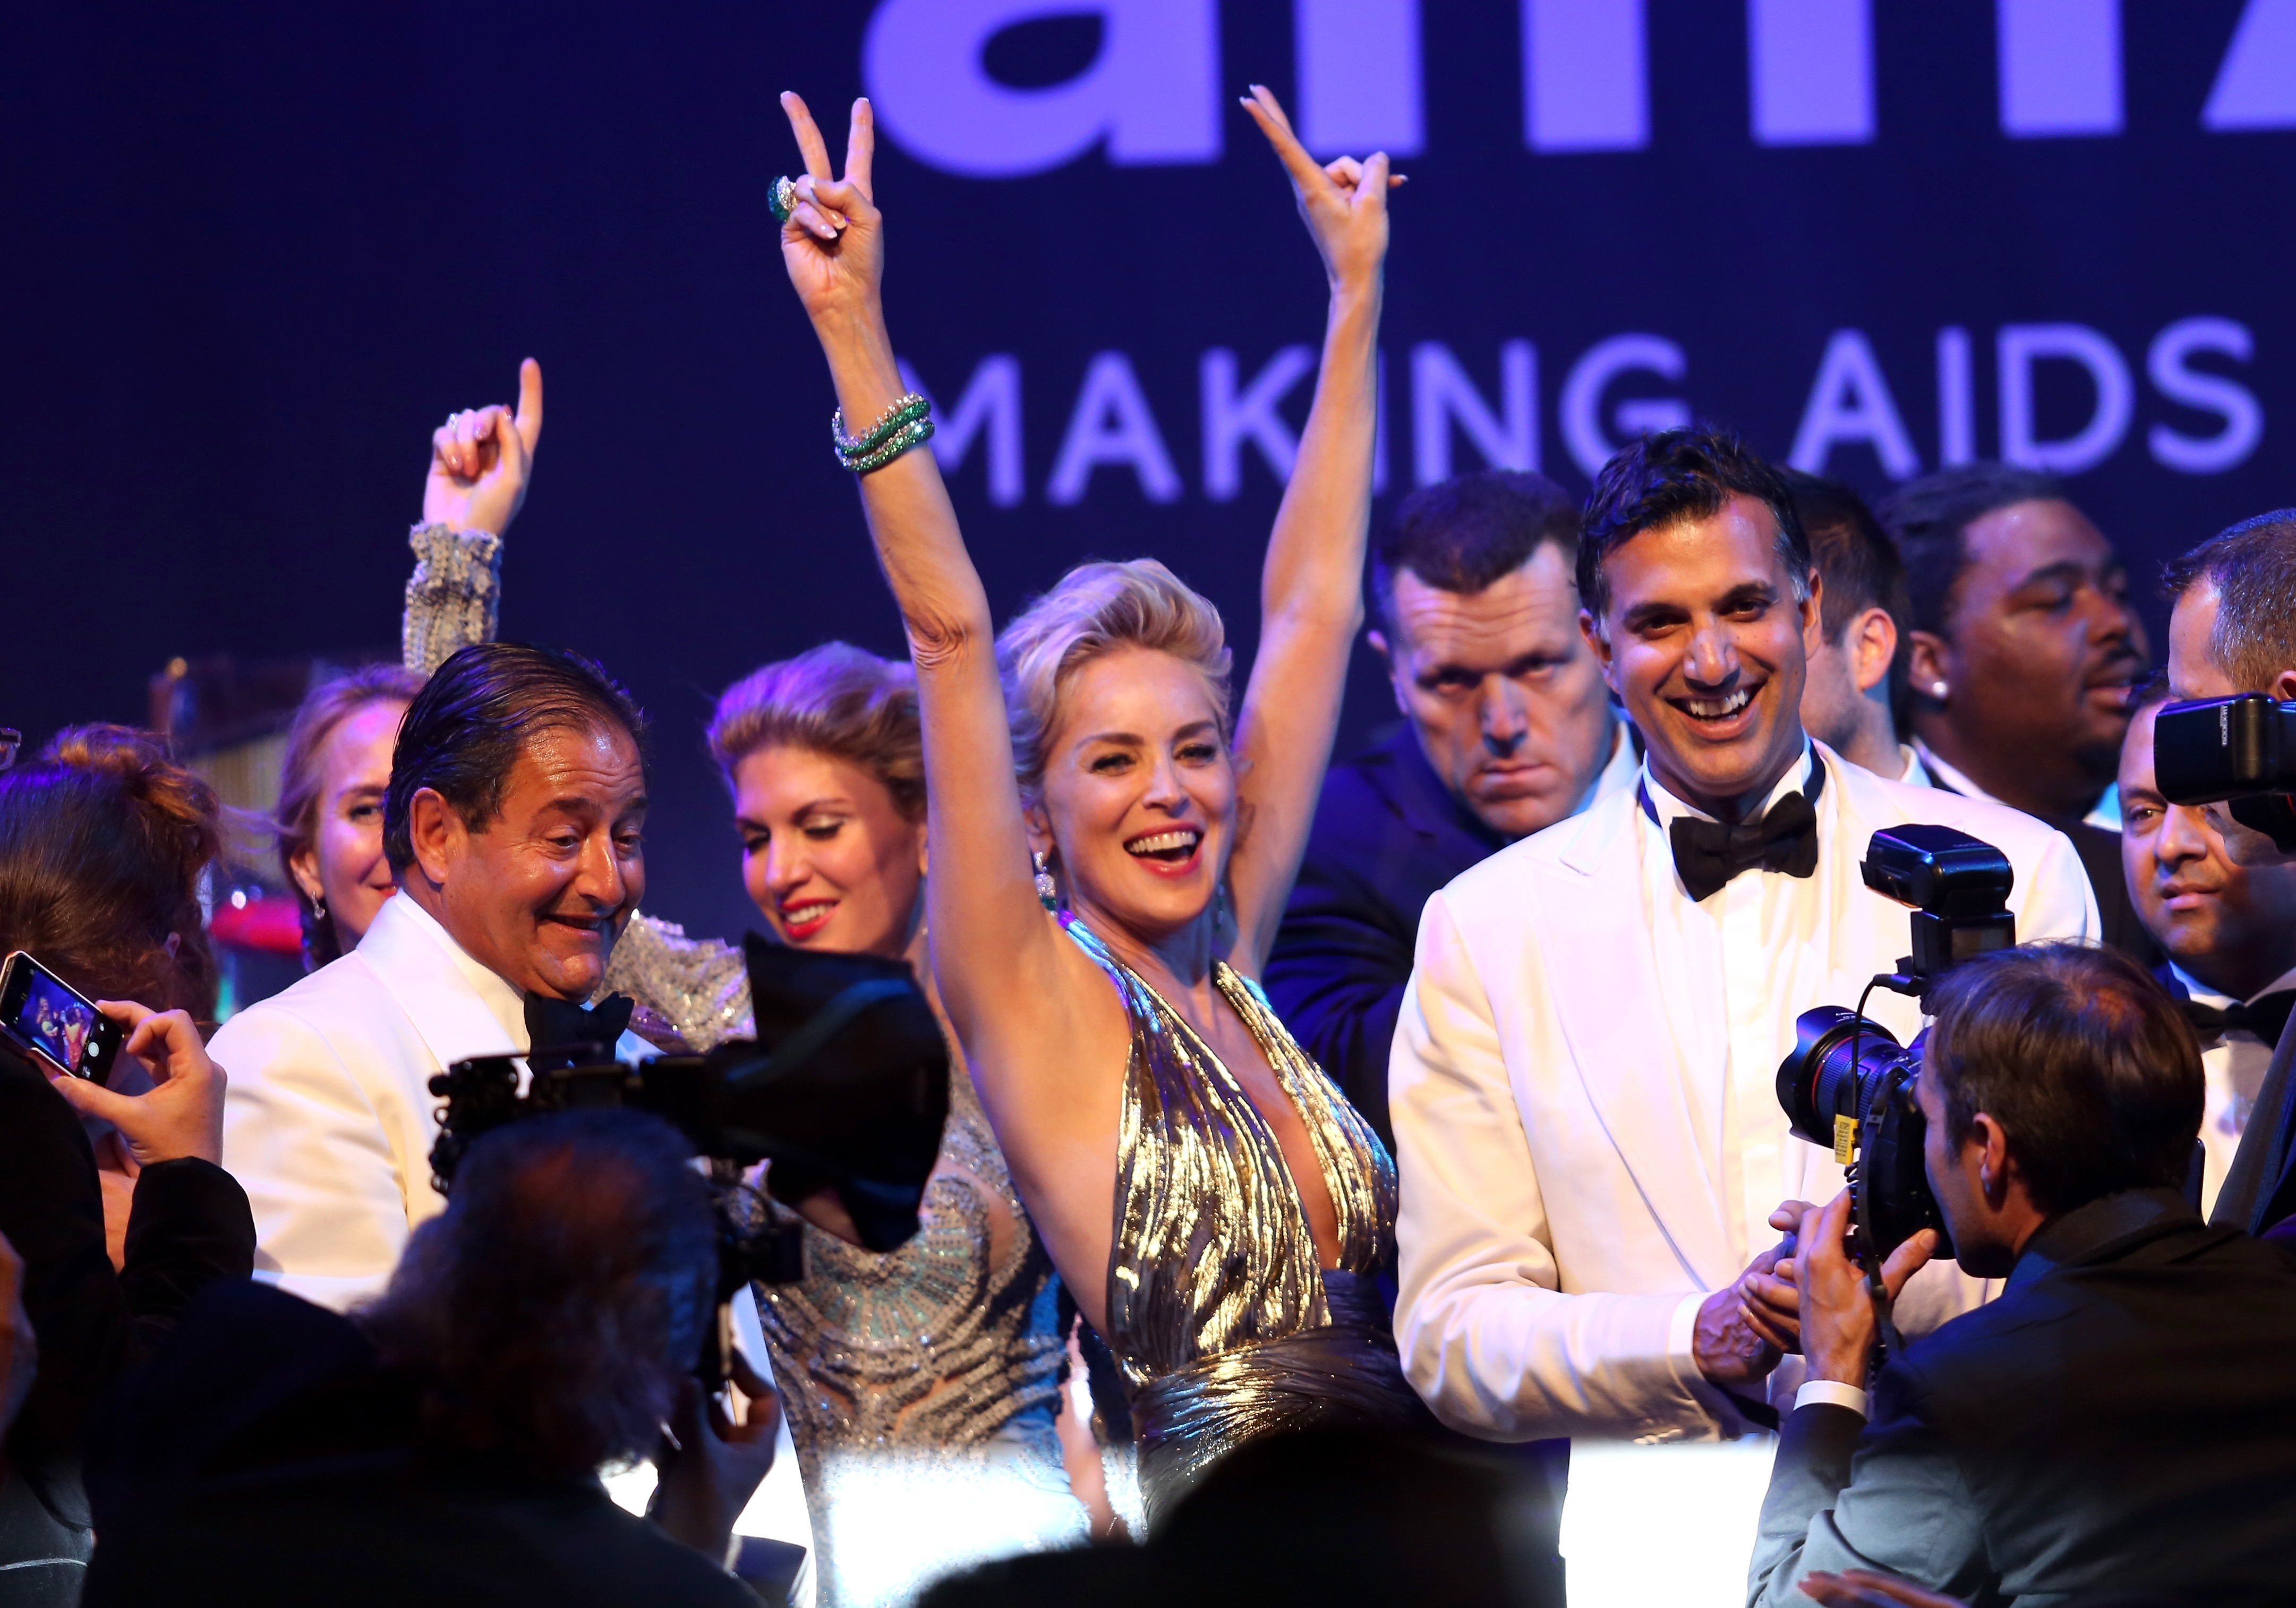 Sharon Stone appears onstage during amfAR's 21st Cinema Against AIDS Gala at Hotel du Cap-Eden-Roc on Thursday in Cap d'Antibes, France.